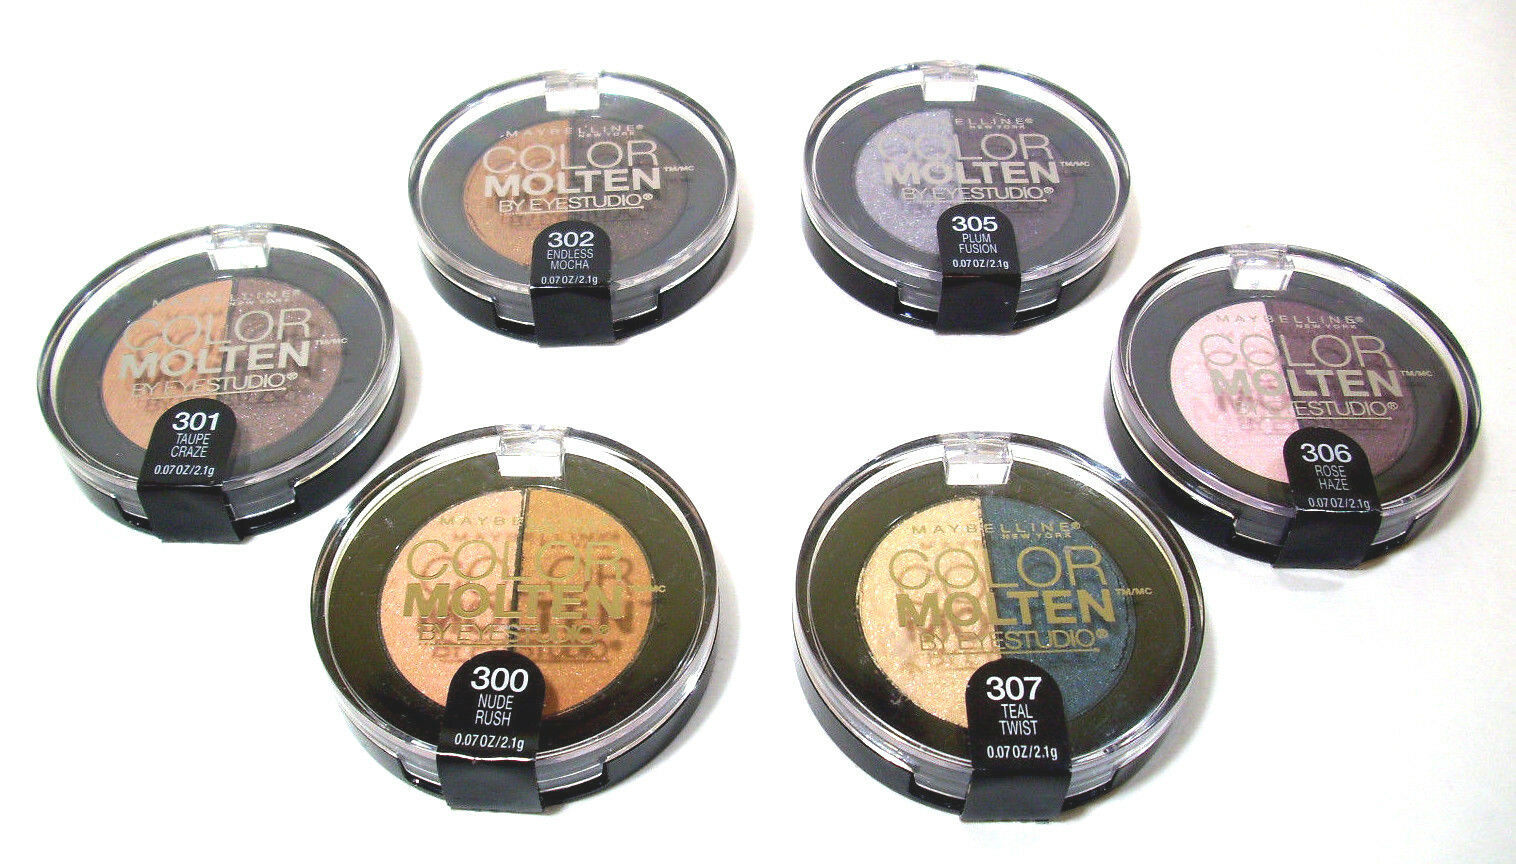 Maybelline Color Molten Cream Eye Shadow Makeup  Nude Taupe Mocha Rose Plum Teal